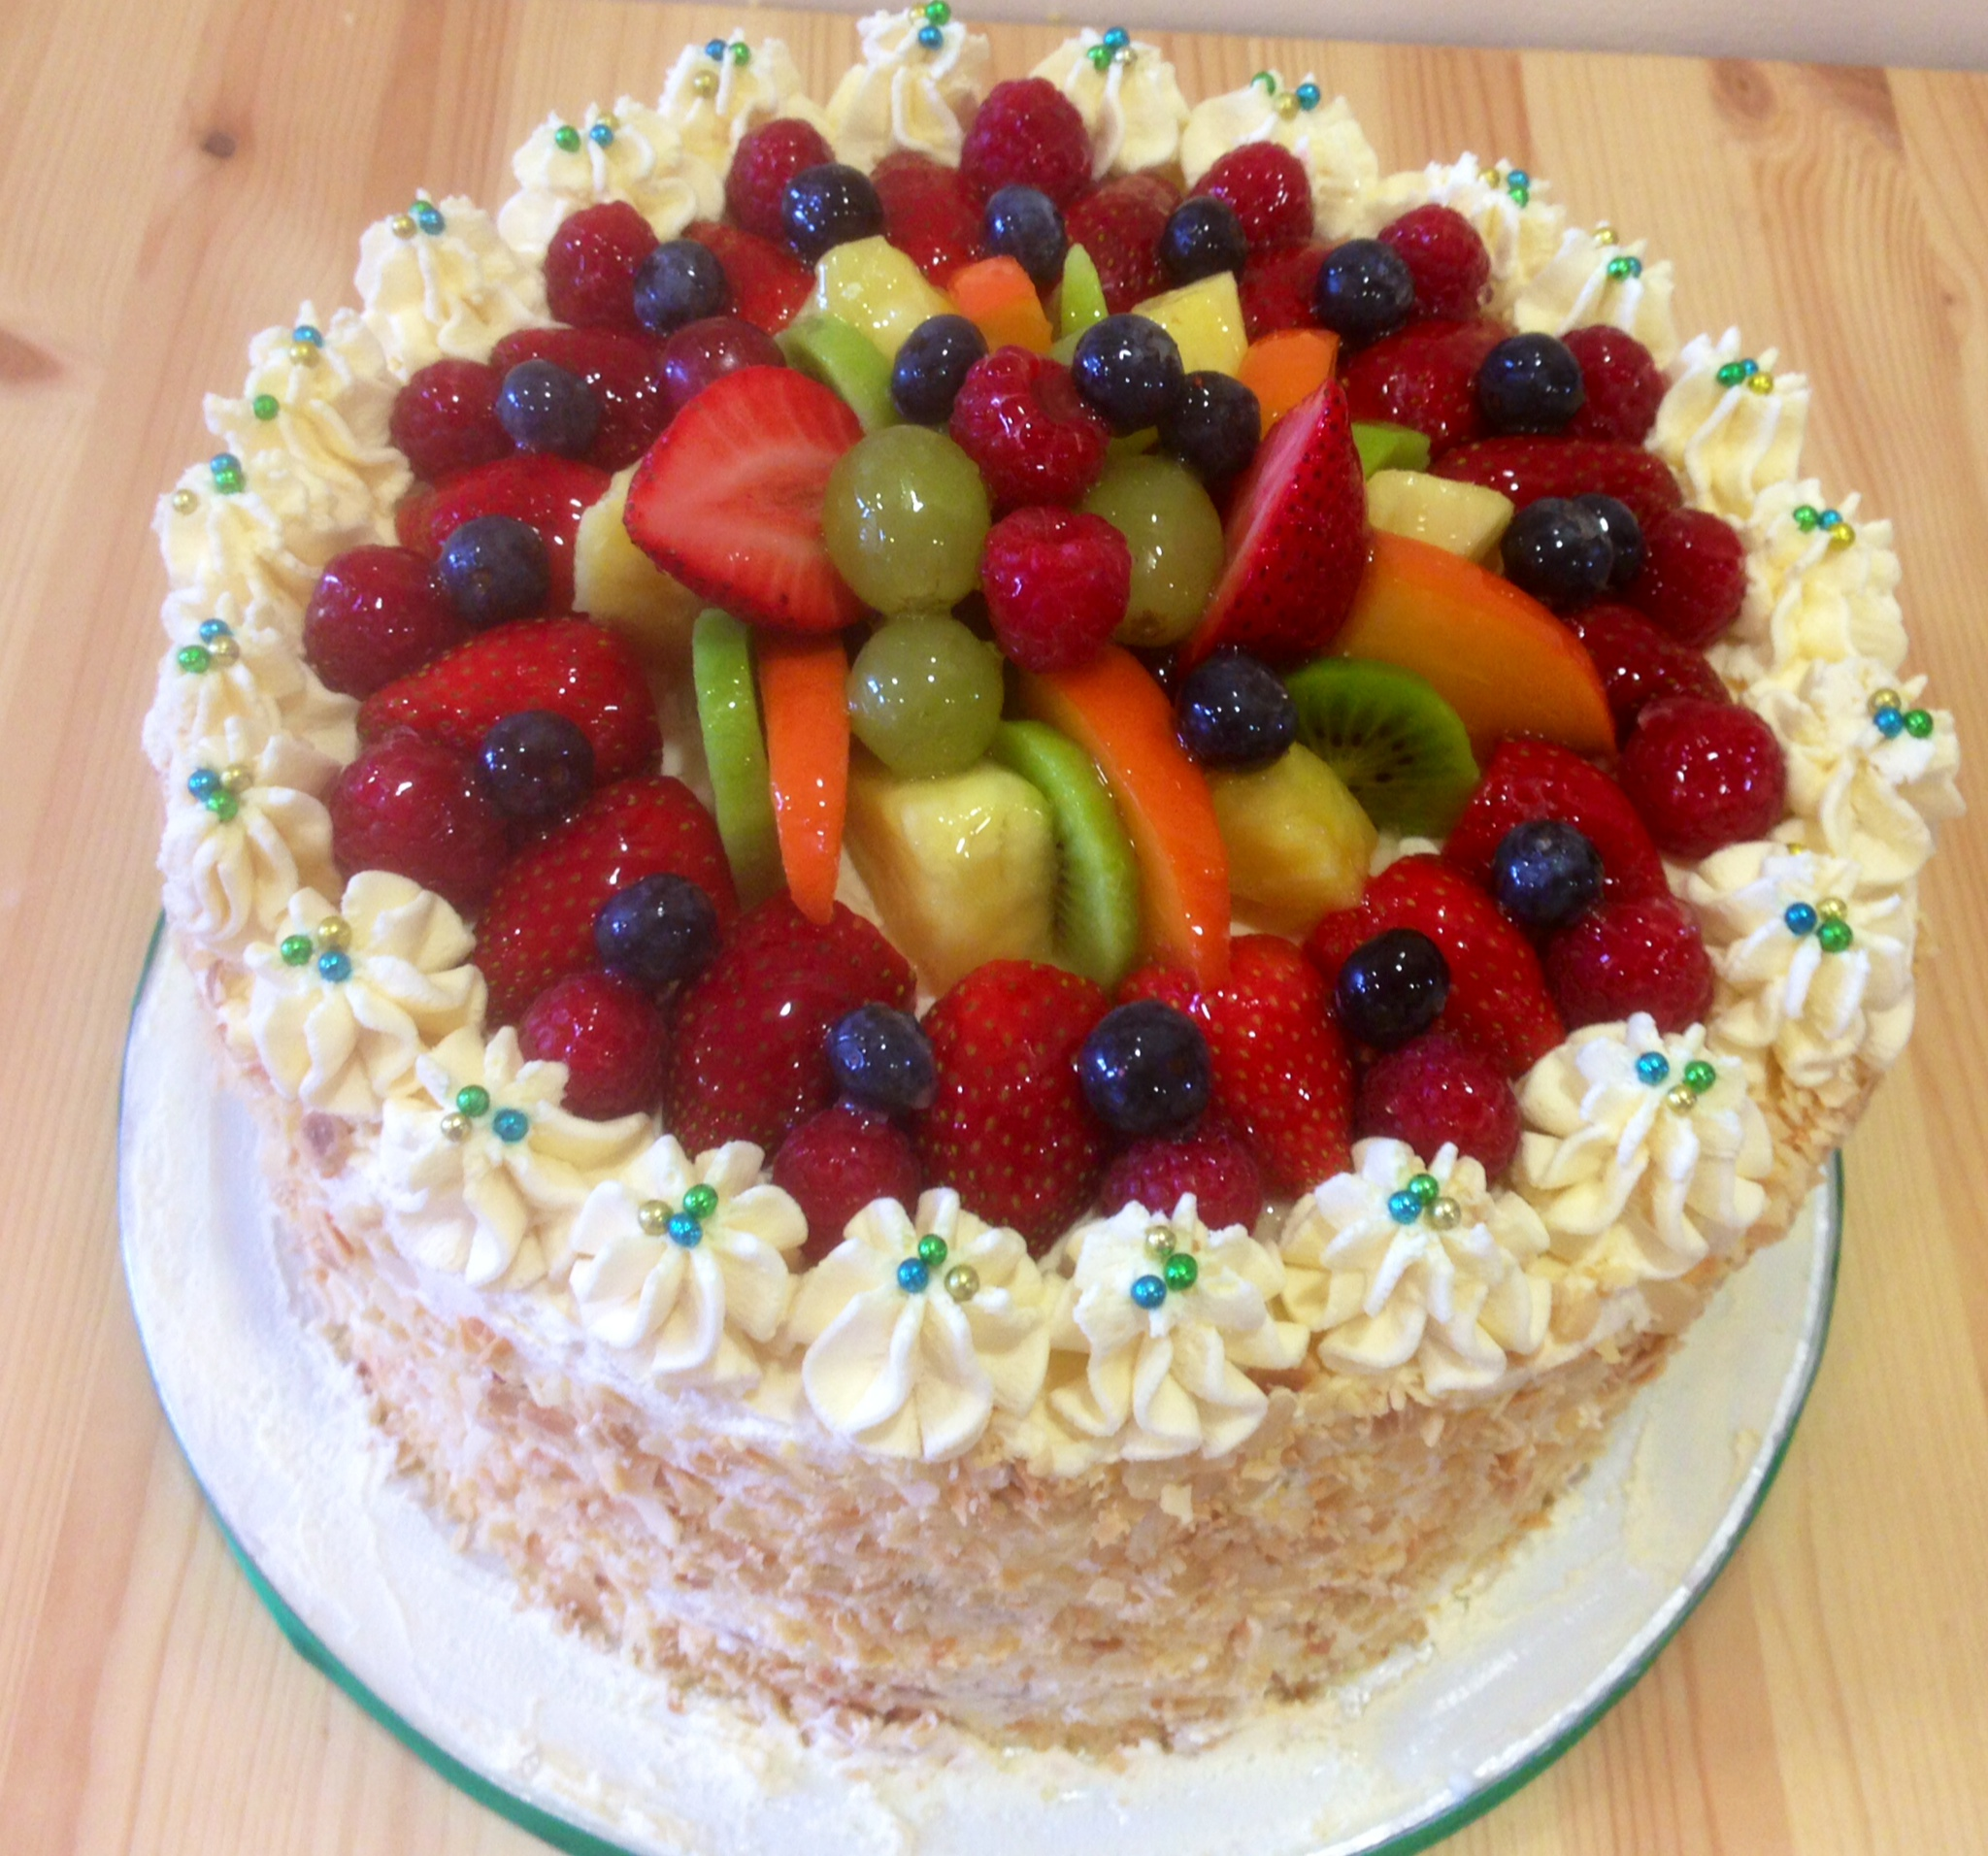 Cake With Fruits On Top : Top 15 Super Enticing and Colorful Fruit Cakes - Page 4 of 16